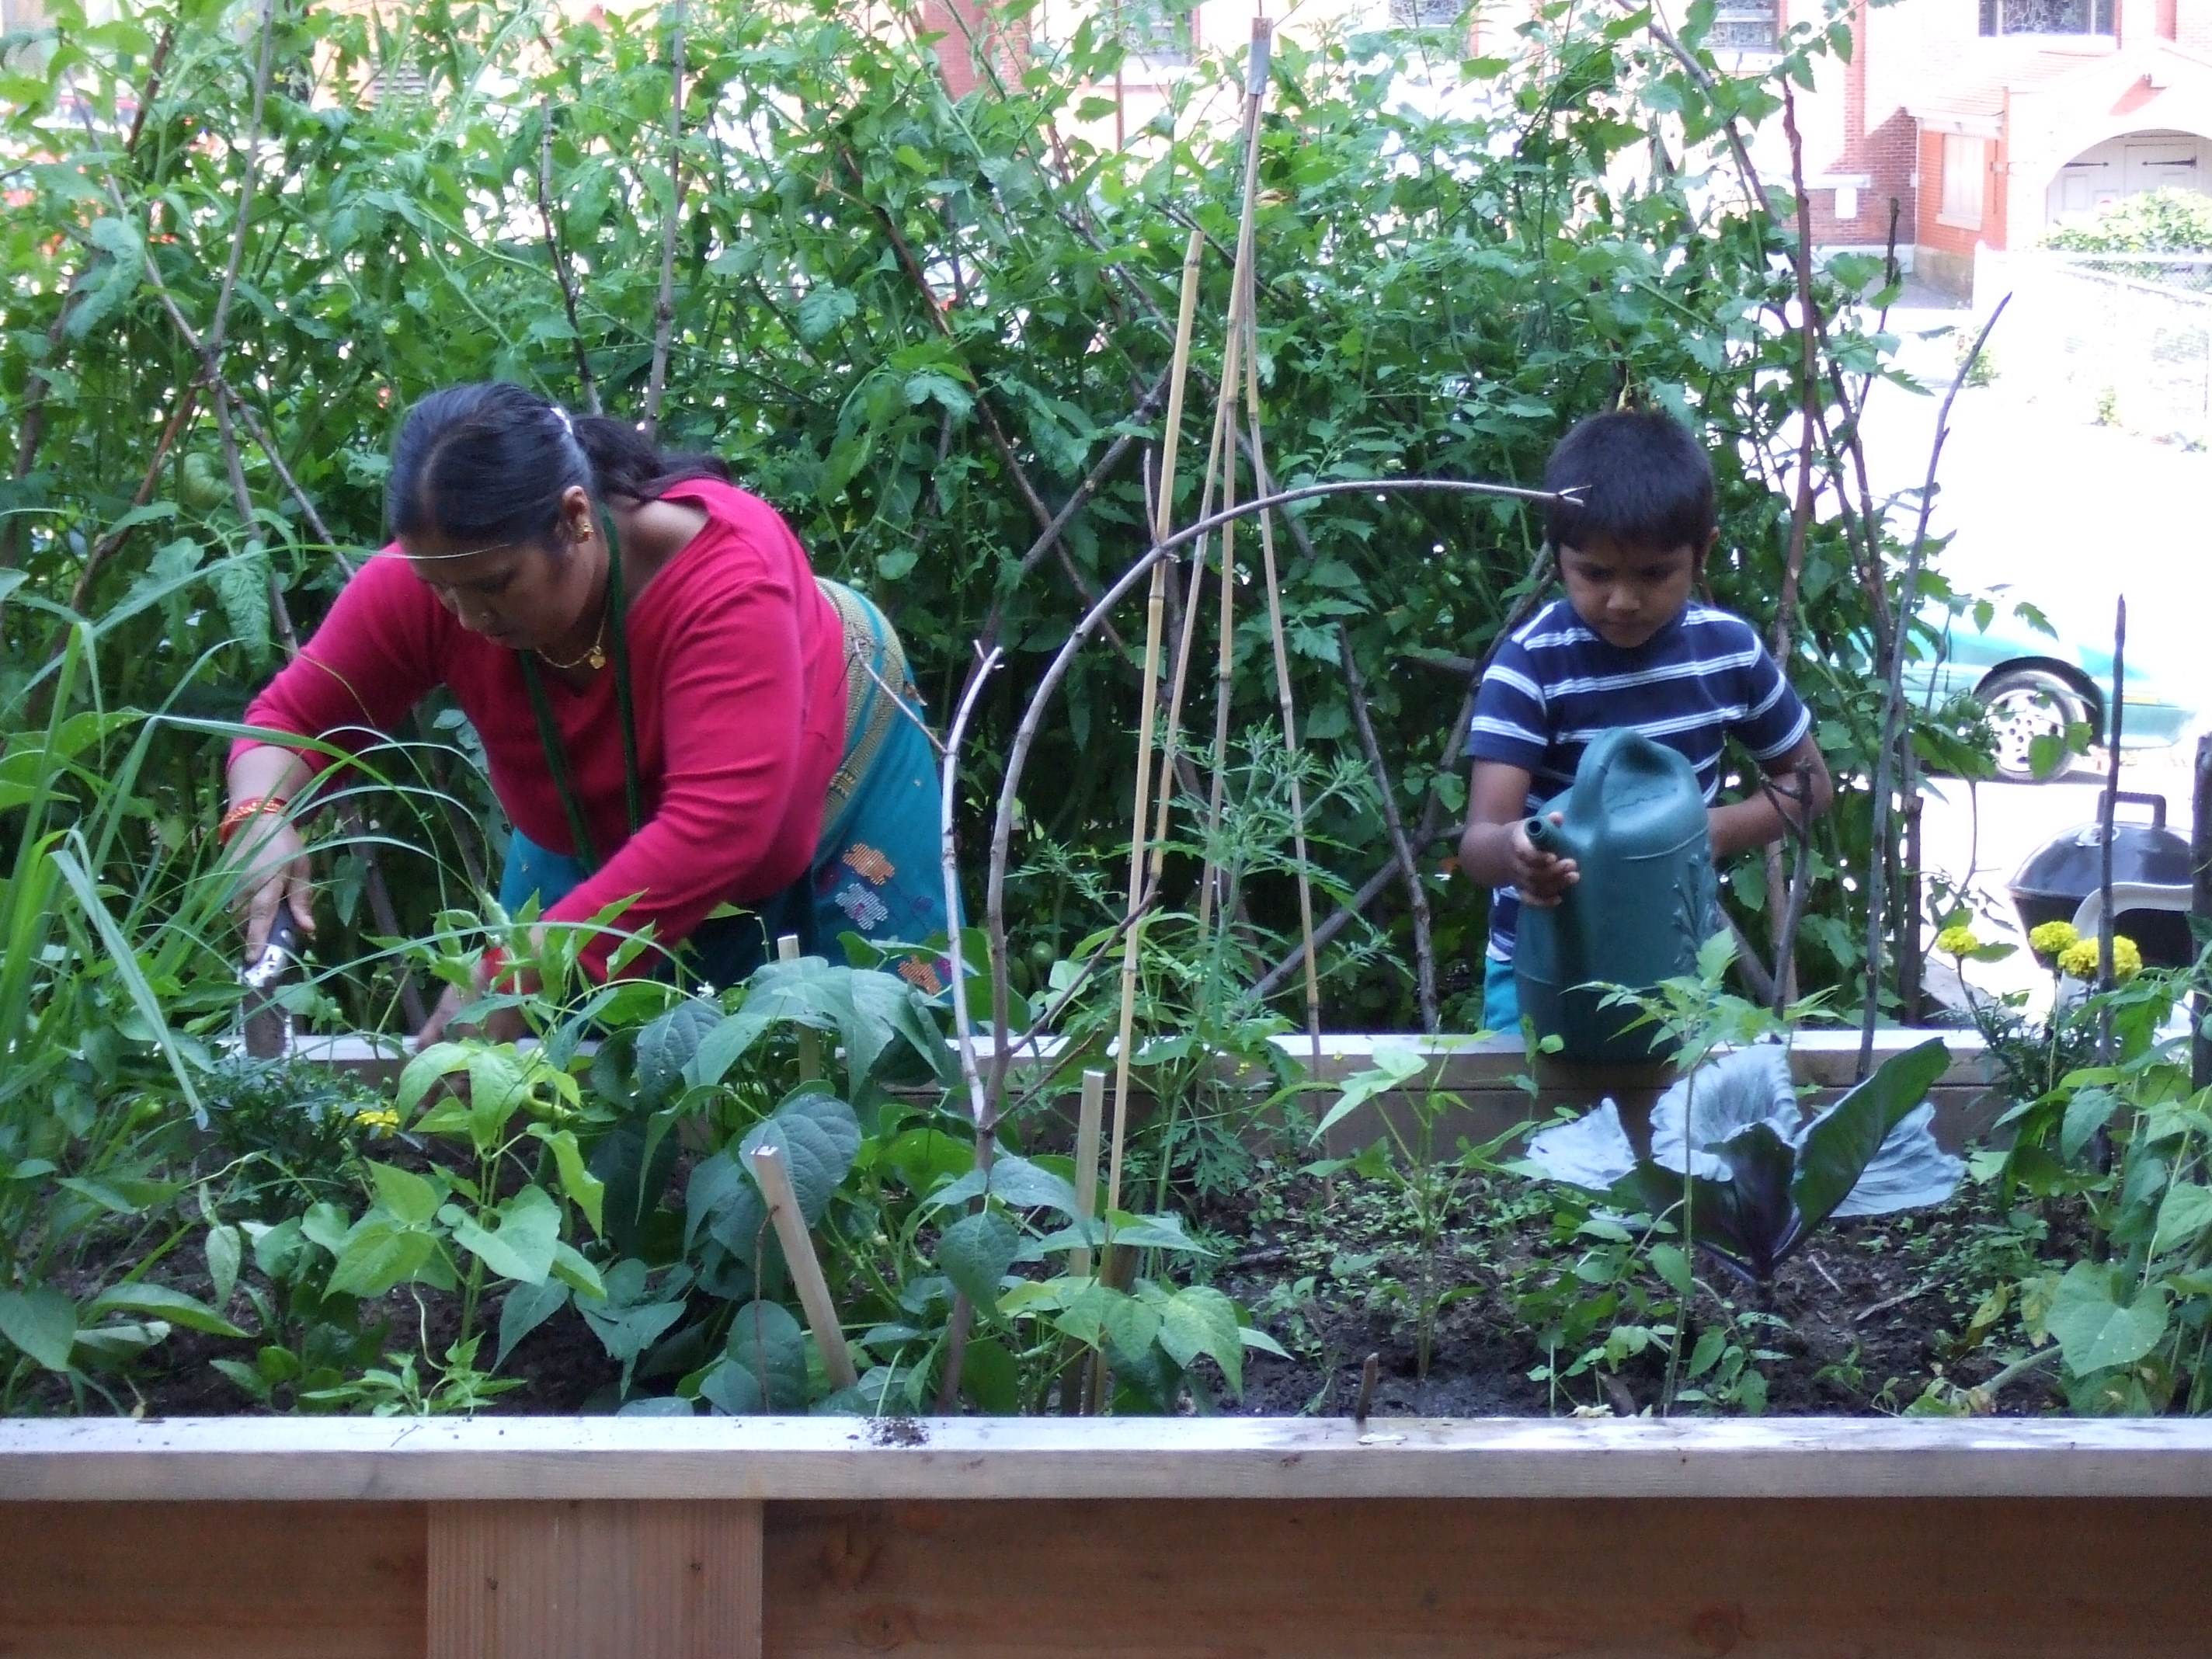 Tapestry Garden - Families care for plants